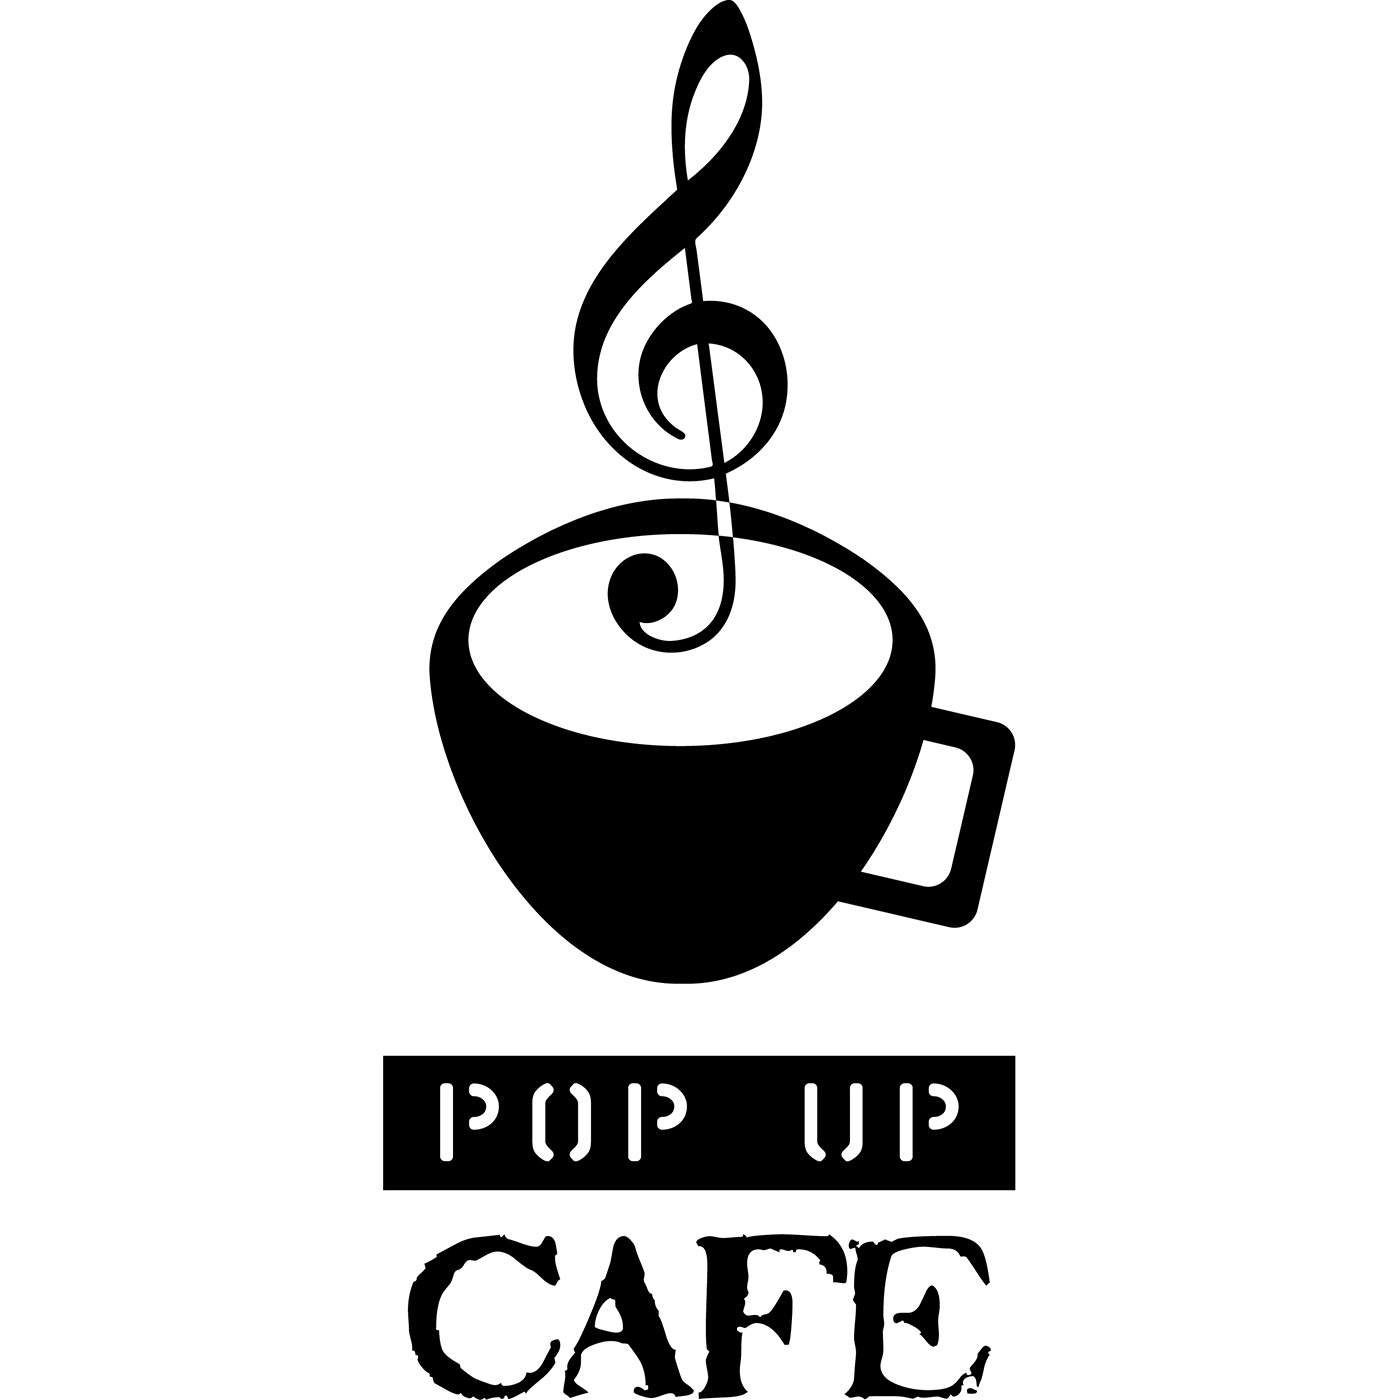 Pop Up Cafe' 10, Meare Songwriters special.